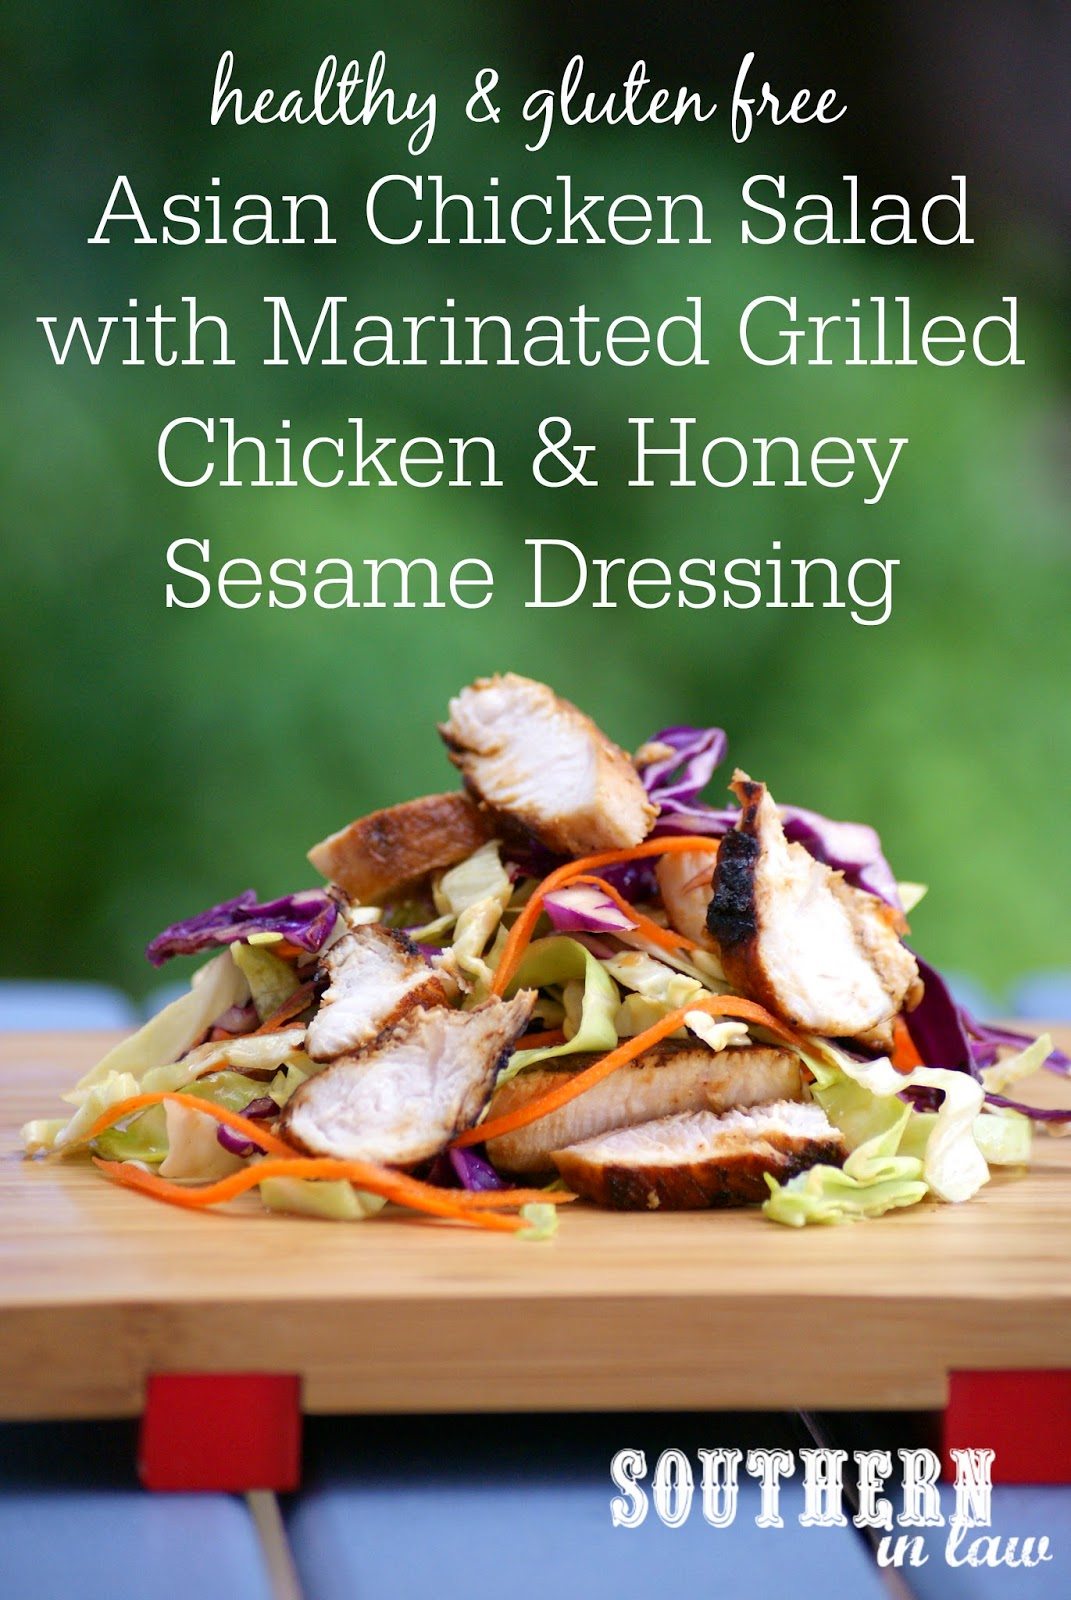 Healthy Asian Chicken Salad with Marinated Chicken Breast and Honey Sesame Dressing Recipe - low fat, gluten free, clean eating friendly, grain free, paleo